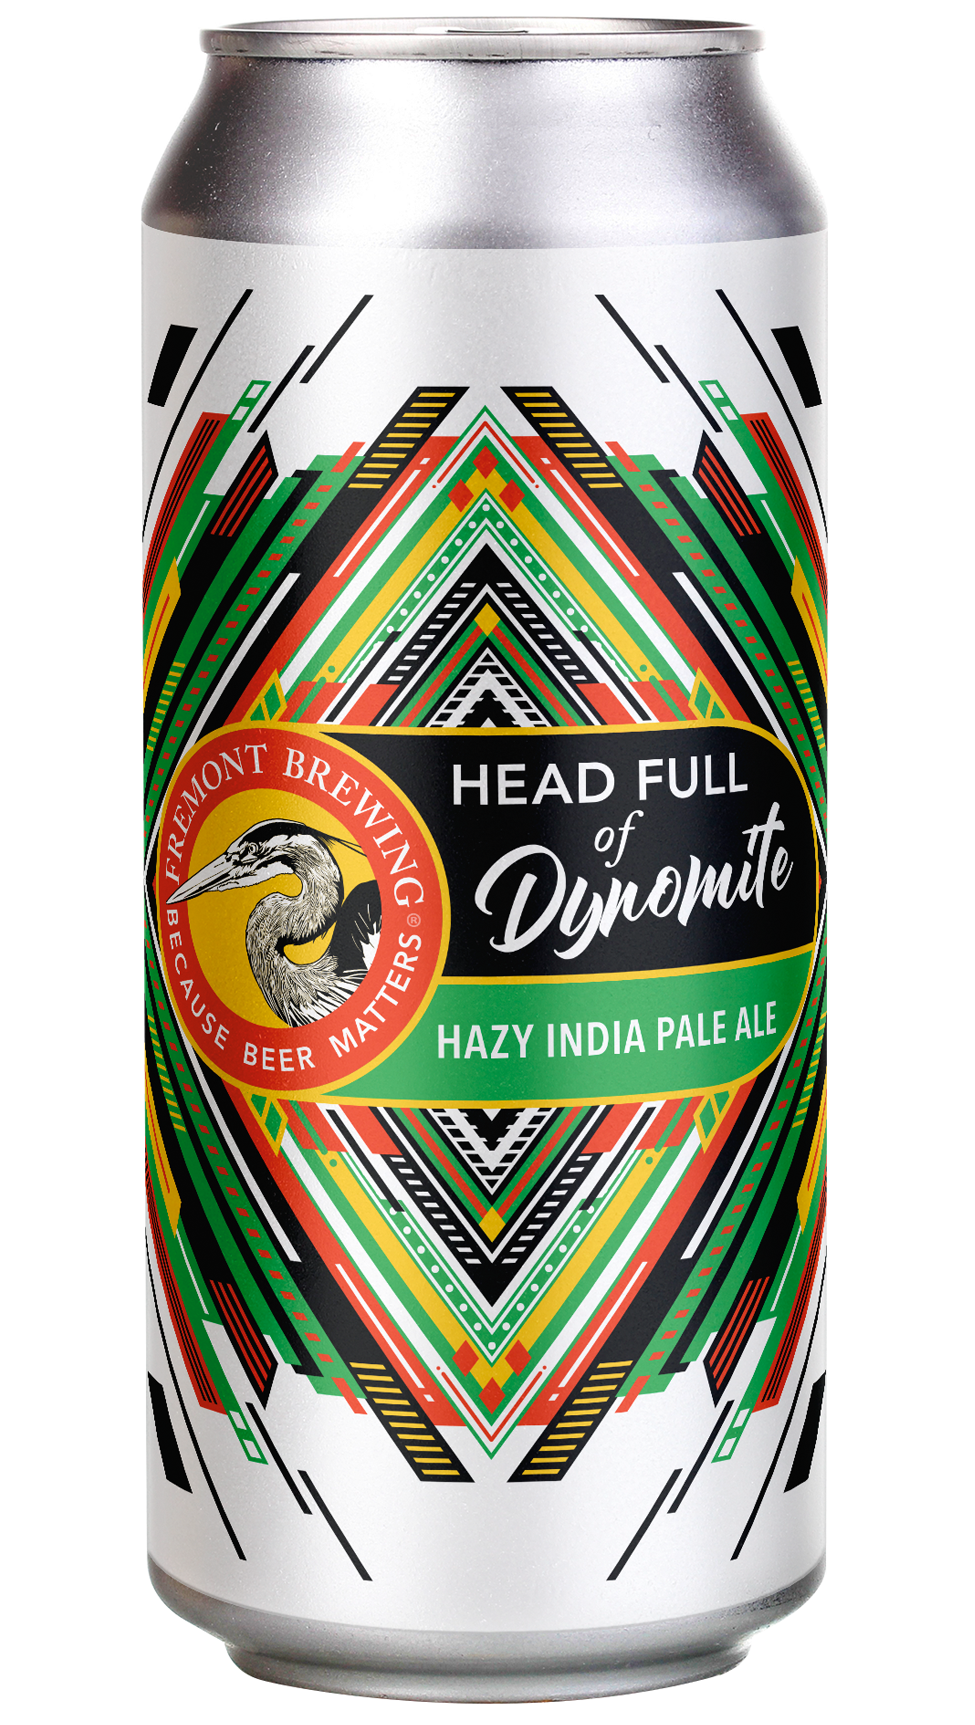 Head Full of Dynomite v.5